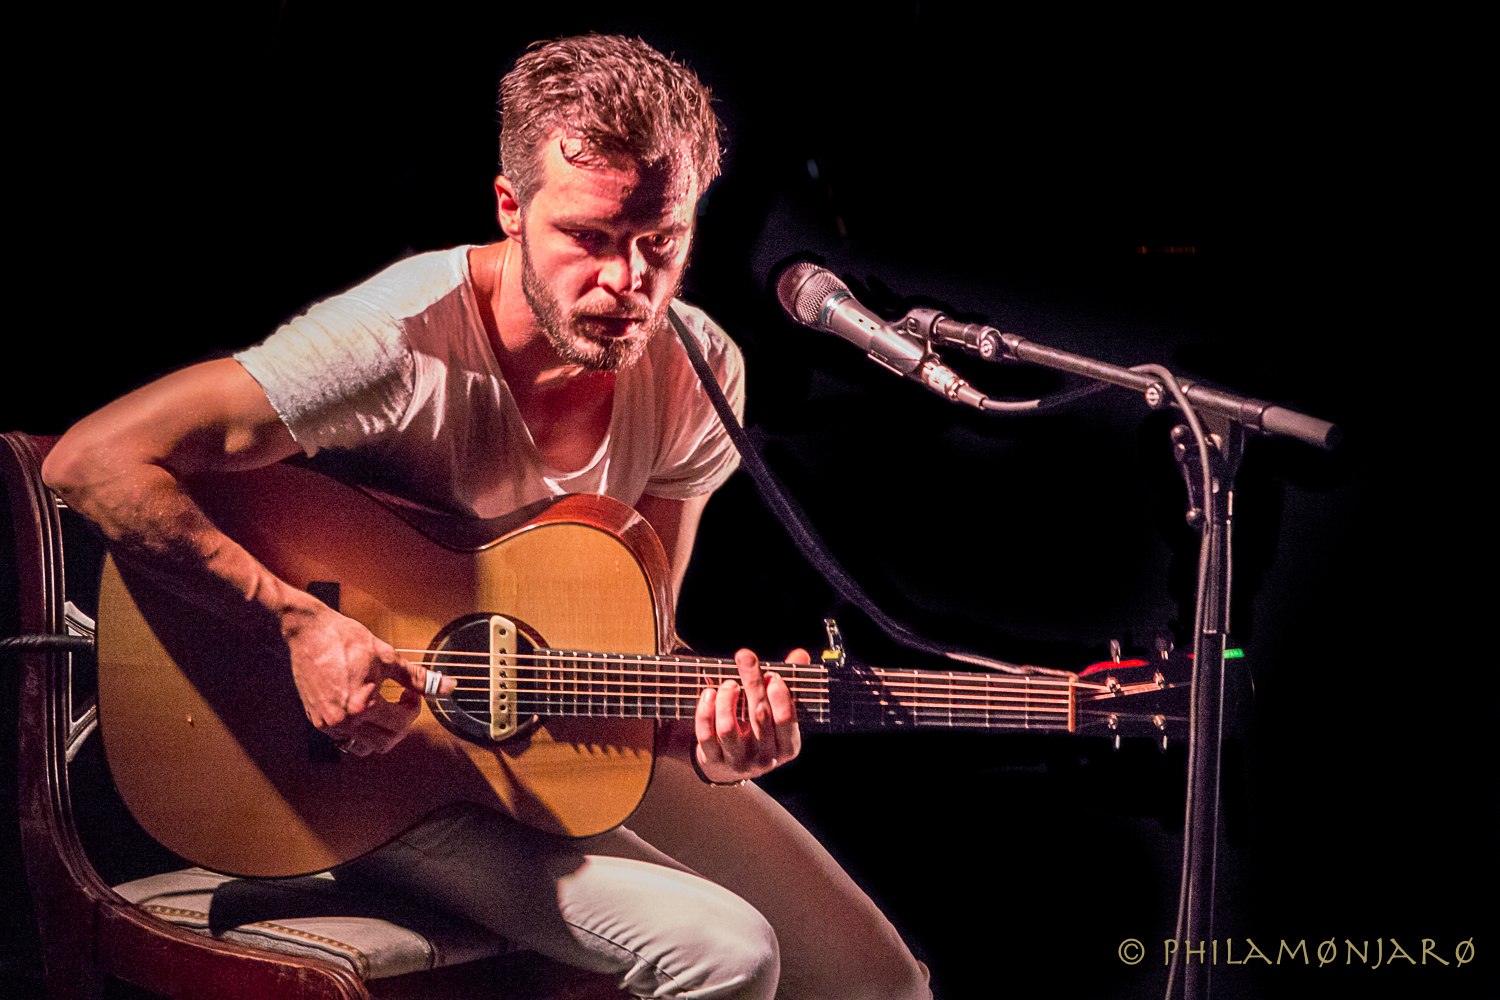 Review / Setlist / Photos | Tallest Man On Earth @ Thalia Hall 8/31/15